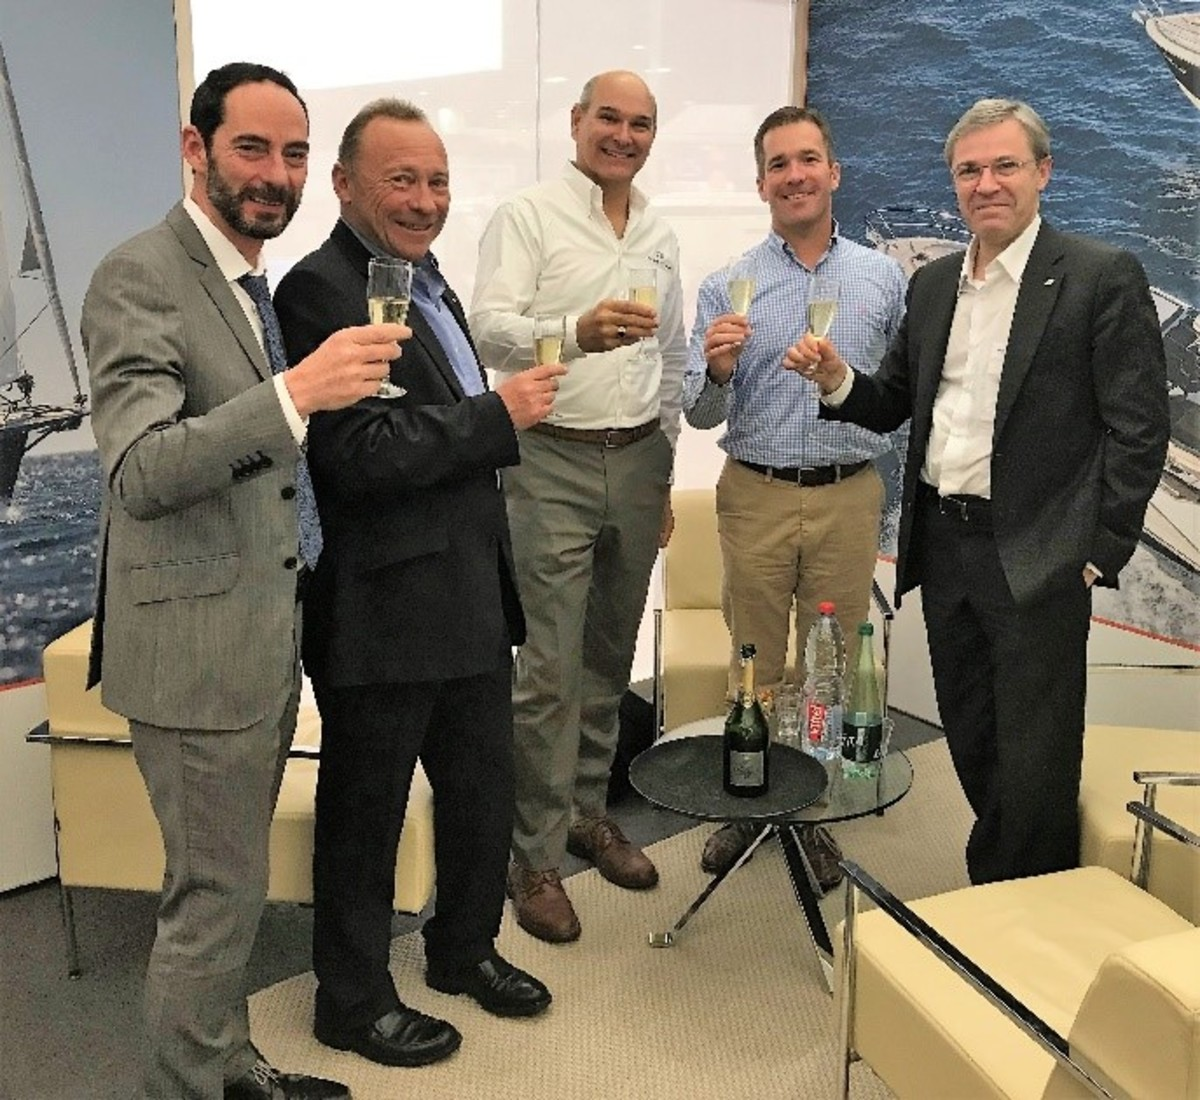 (From left) Groupe Bénéteau boat division business development director François Rodrigues, Jeanneau CEO Jean-Paul Chapeleau, FBC business development vice president Barry Slade, FBC president and CEO John Giglio, and Groupe Bénéteau CEO Hervè Gastinel.